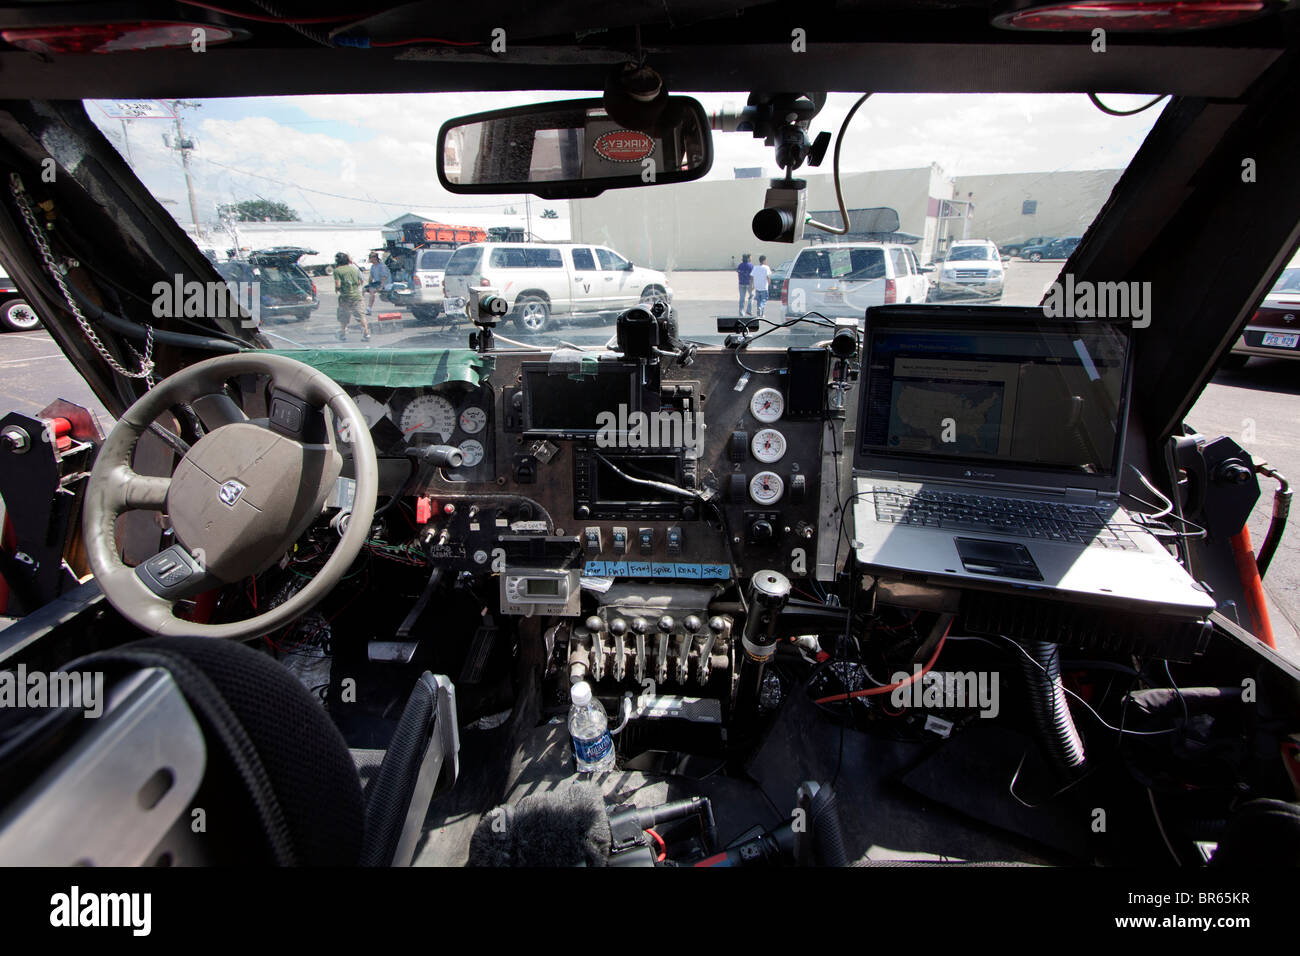 the interior cockpit of sean casey 39 s tornado intercept vehicle an stock photo royalty free. Black Bedroom Furniture Sets. Home Design Ideas